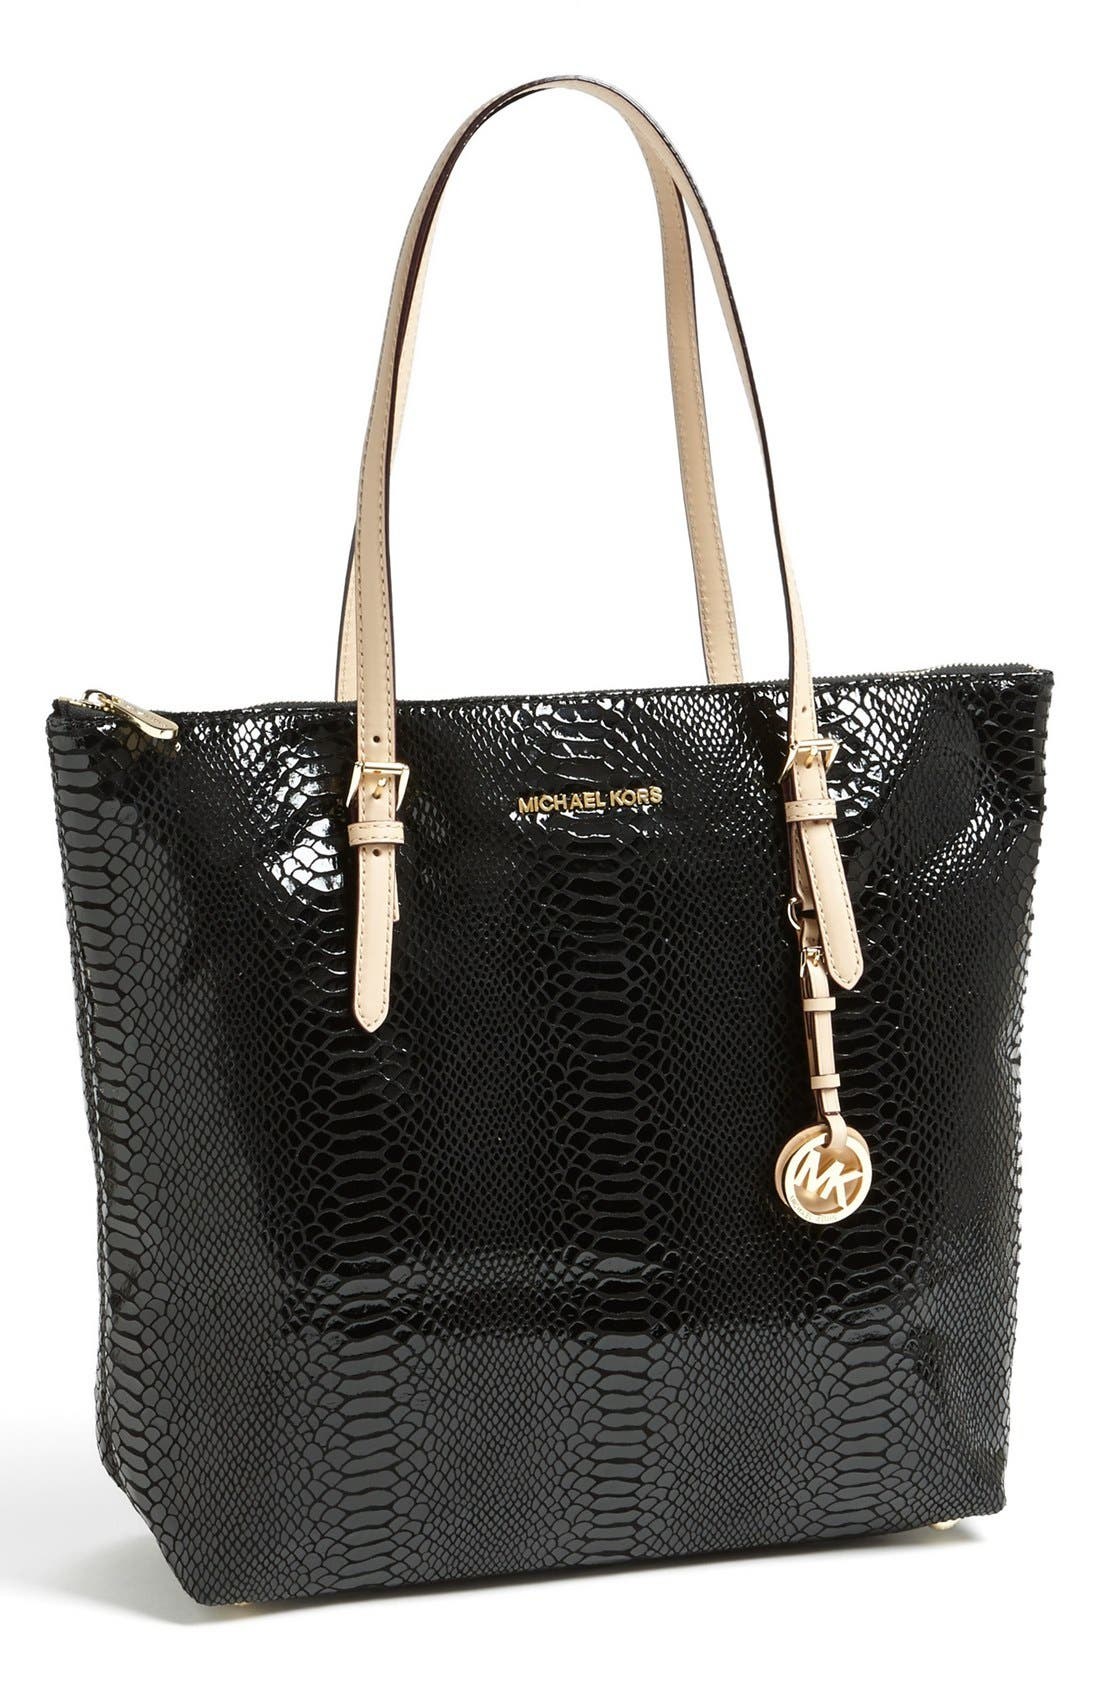 Alternate Image 1 Selected - MICHAEL Michael Kors 'Jet Set - Large' Patent Leather Tote